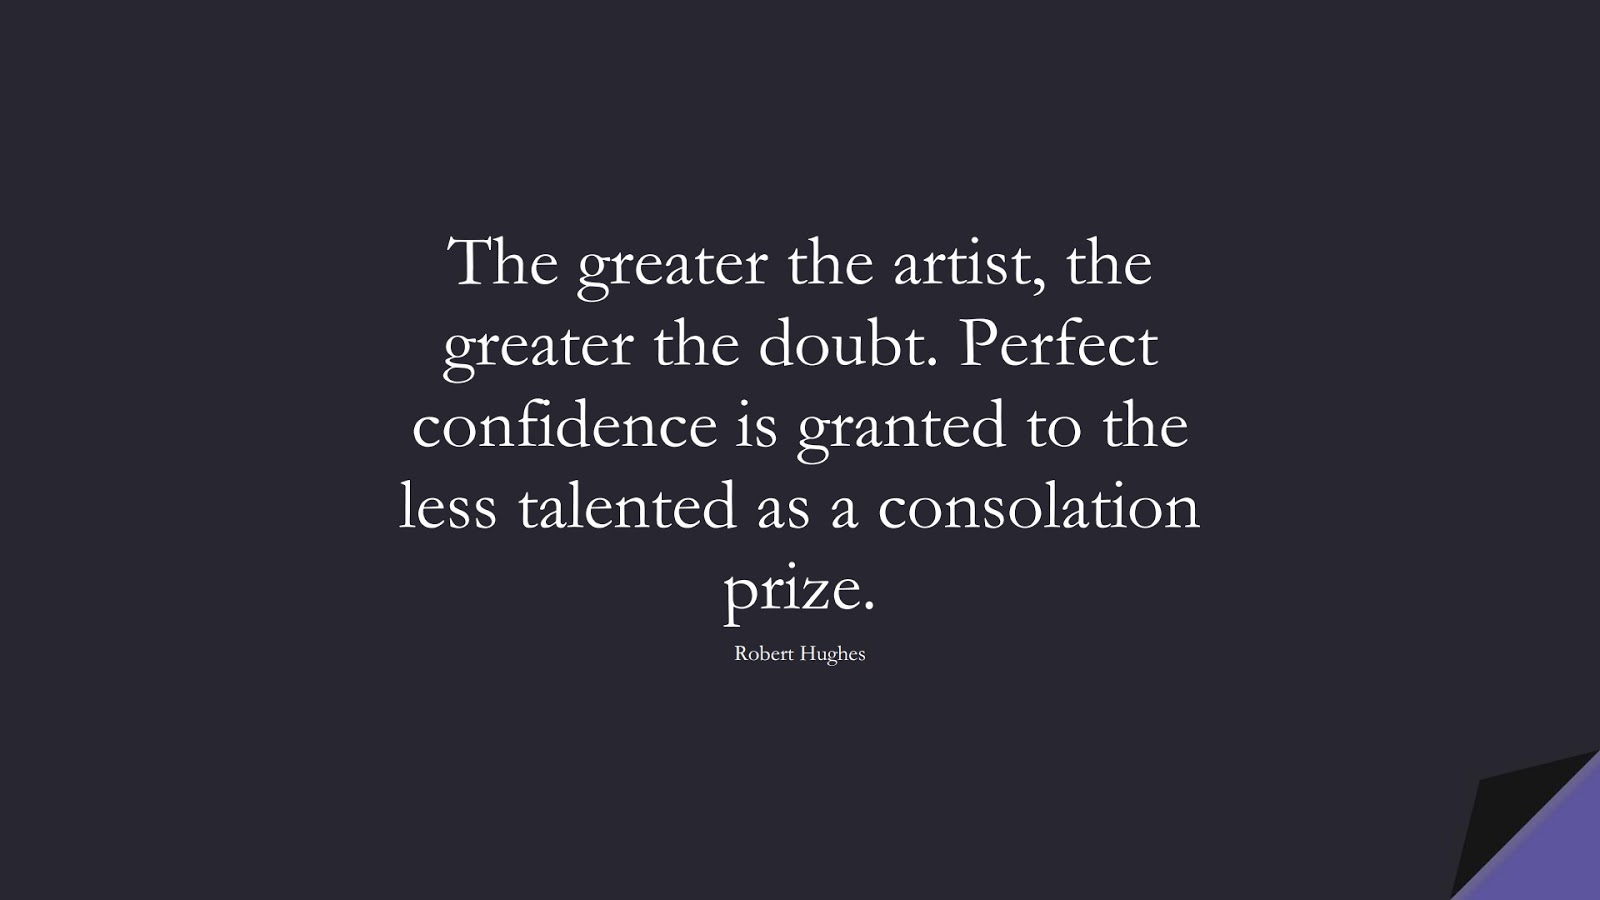 The greater the artist, the greater the doubt. Perfect confidence is granted to the less talented as a consolation prize. (Robert Hughes);  #SelfEsteemQuotes